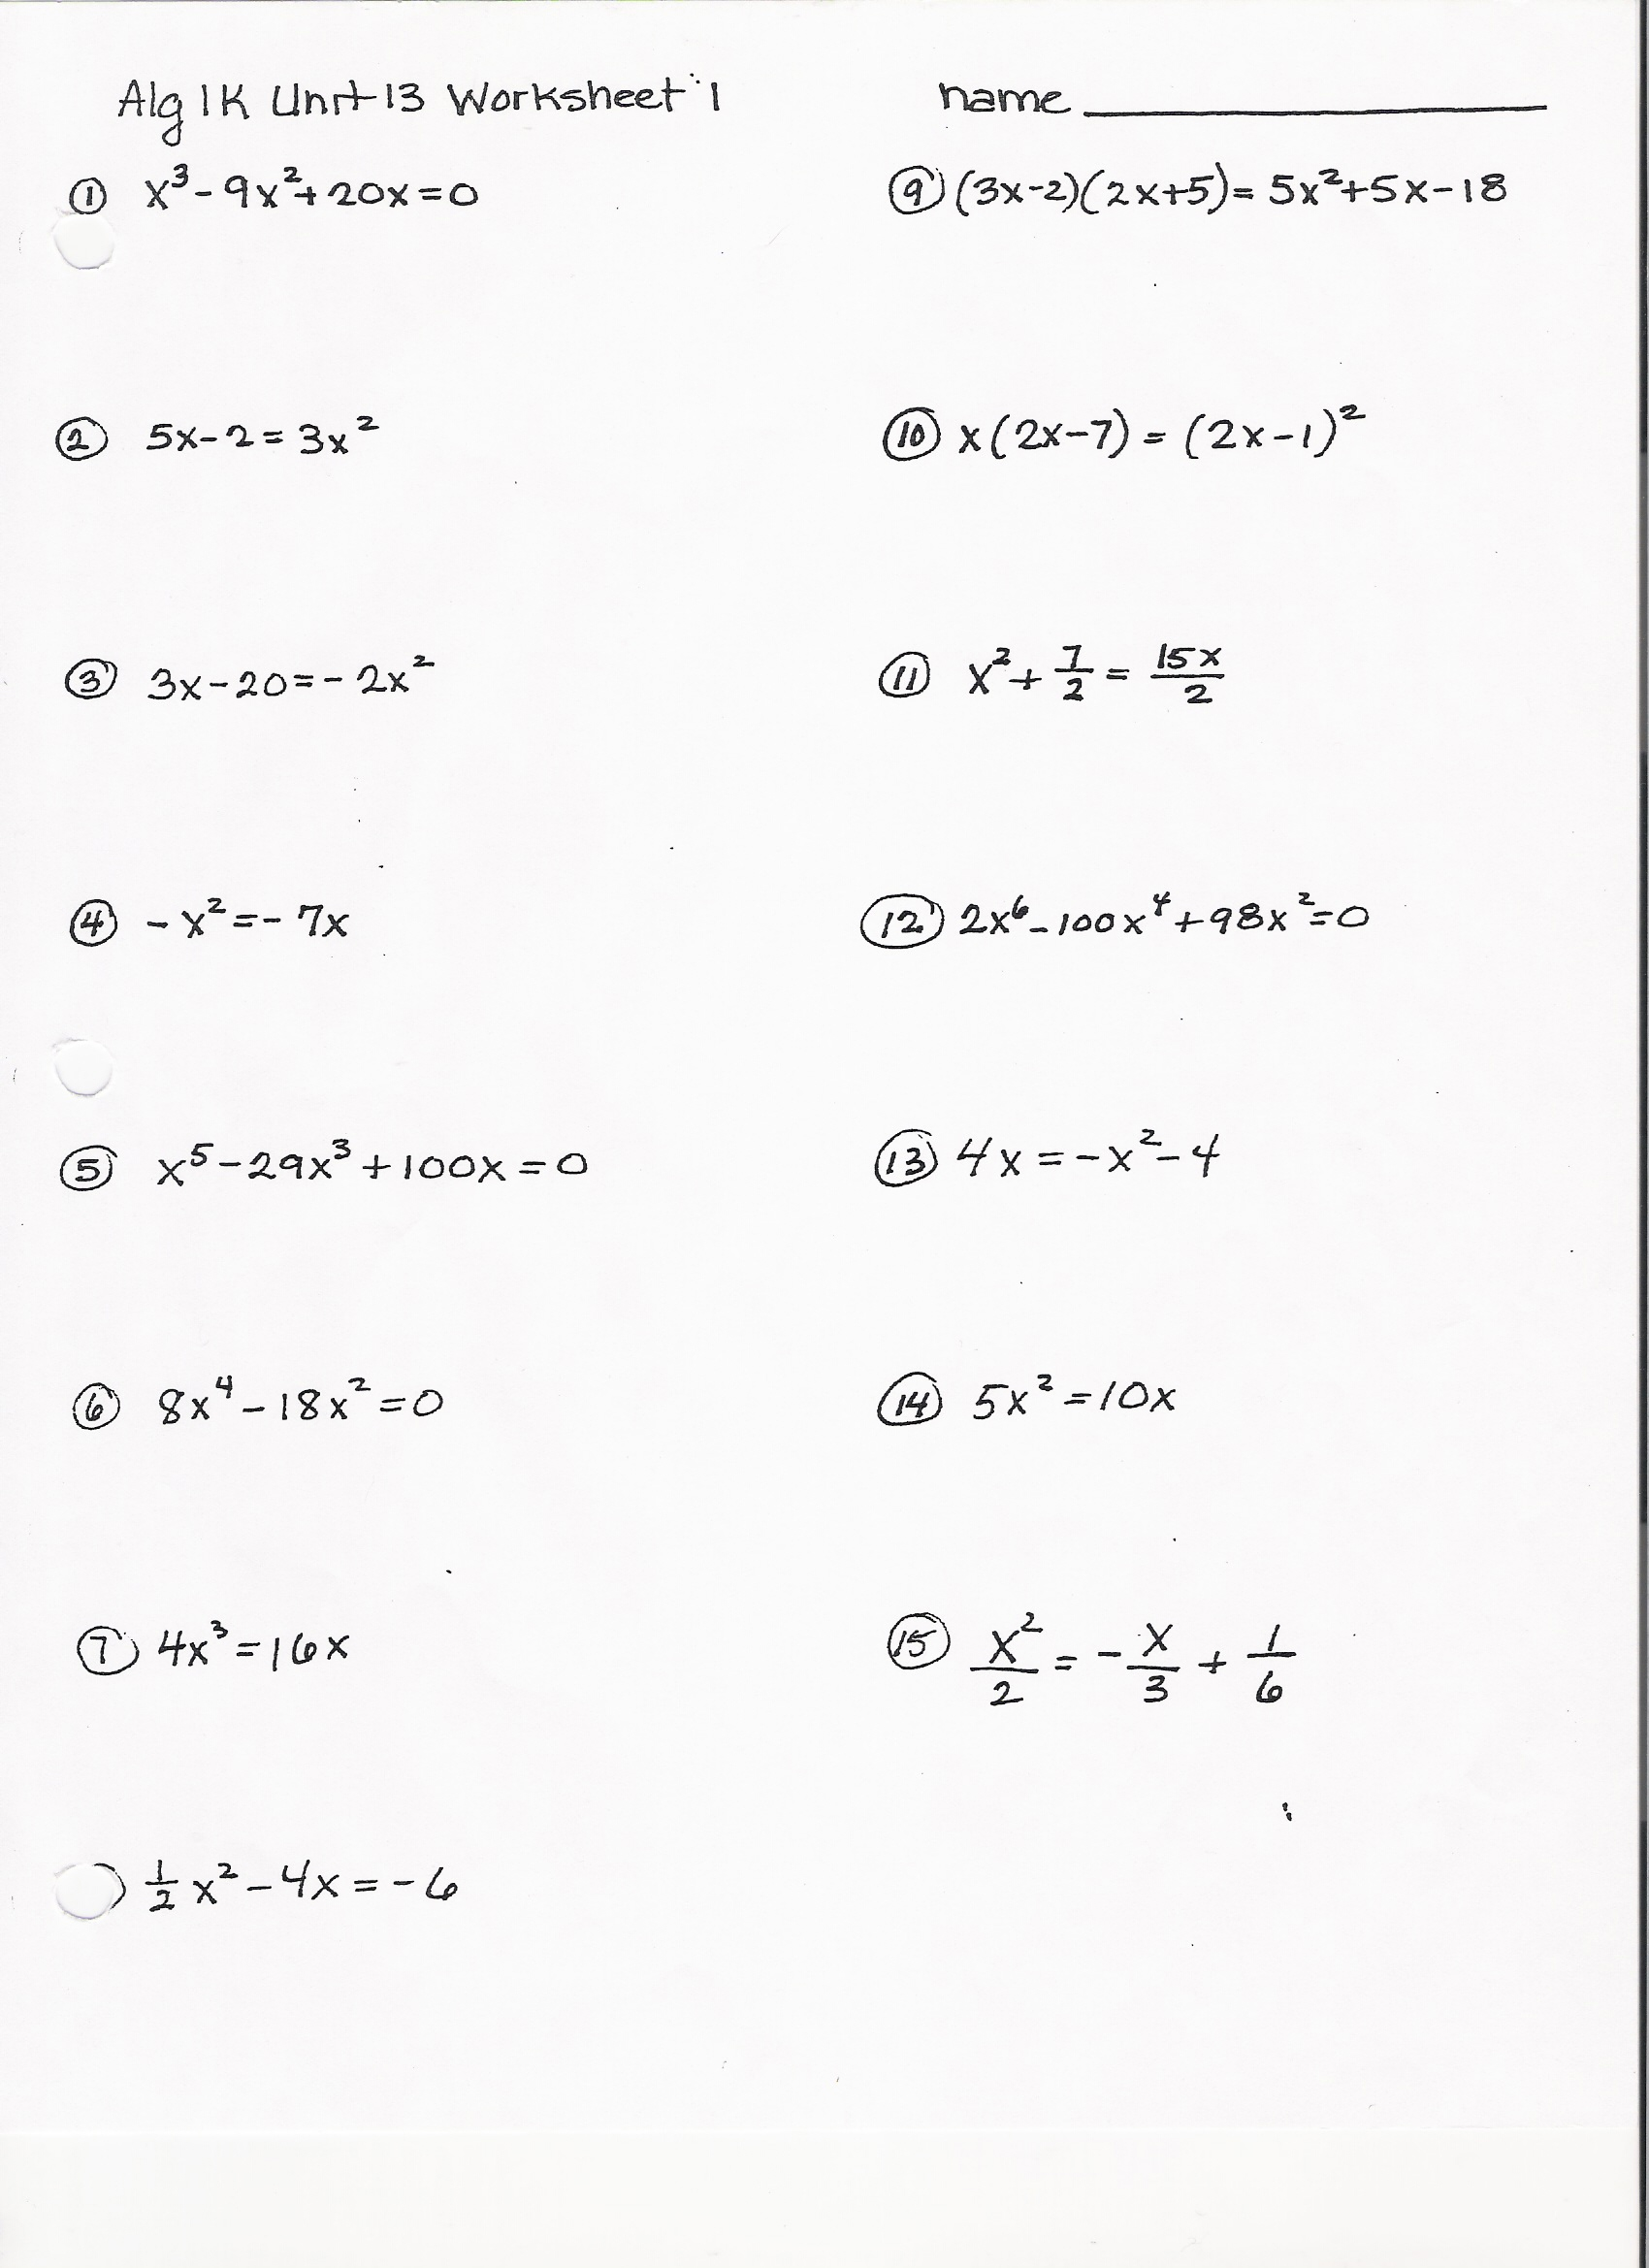 11 Best Images Of Algebra 1 Multiplying Polynomials Worksheet